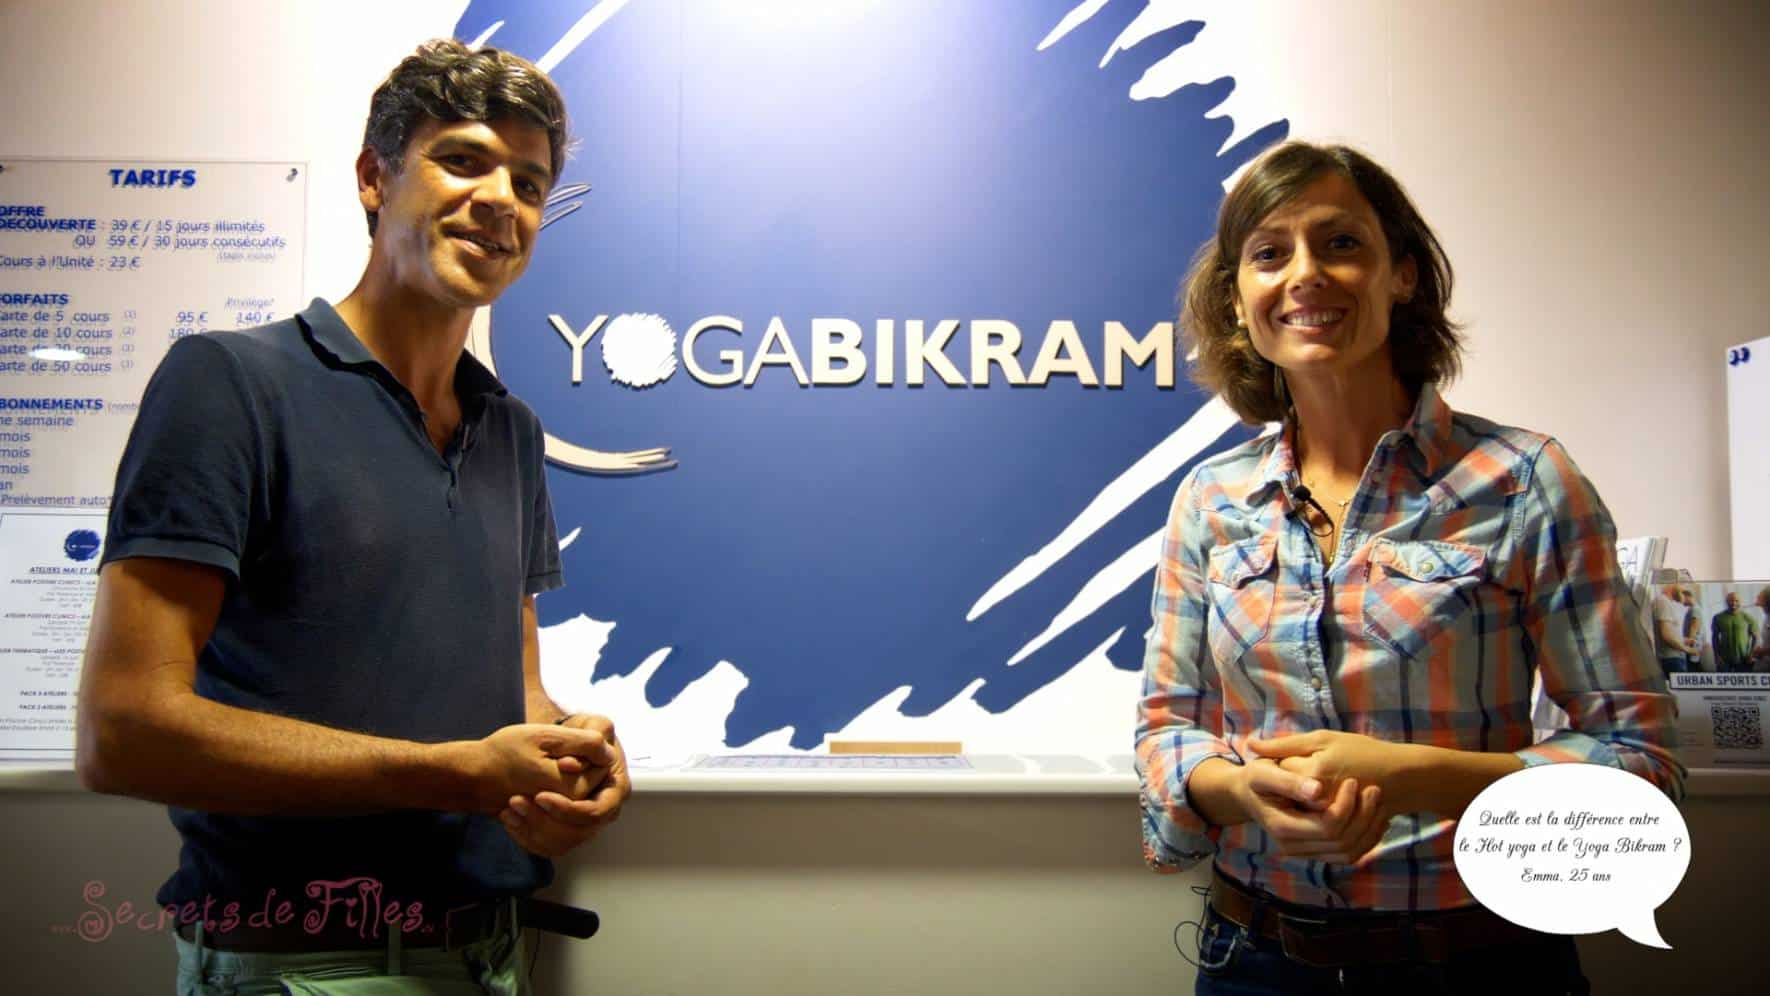 hot-yoga-Yogabikram